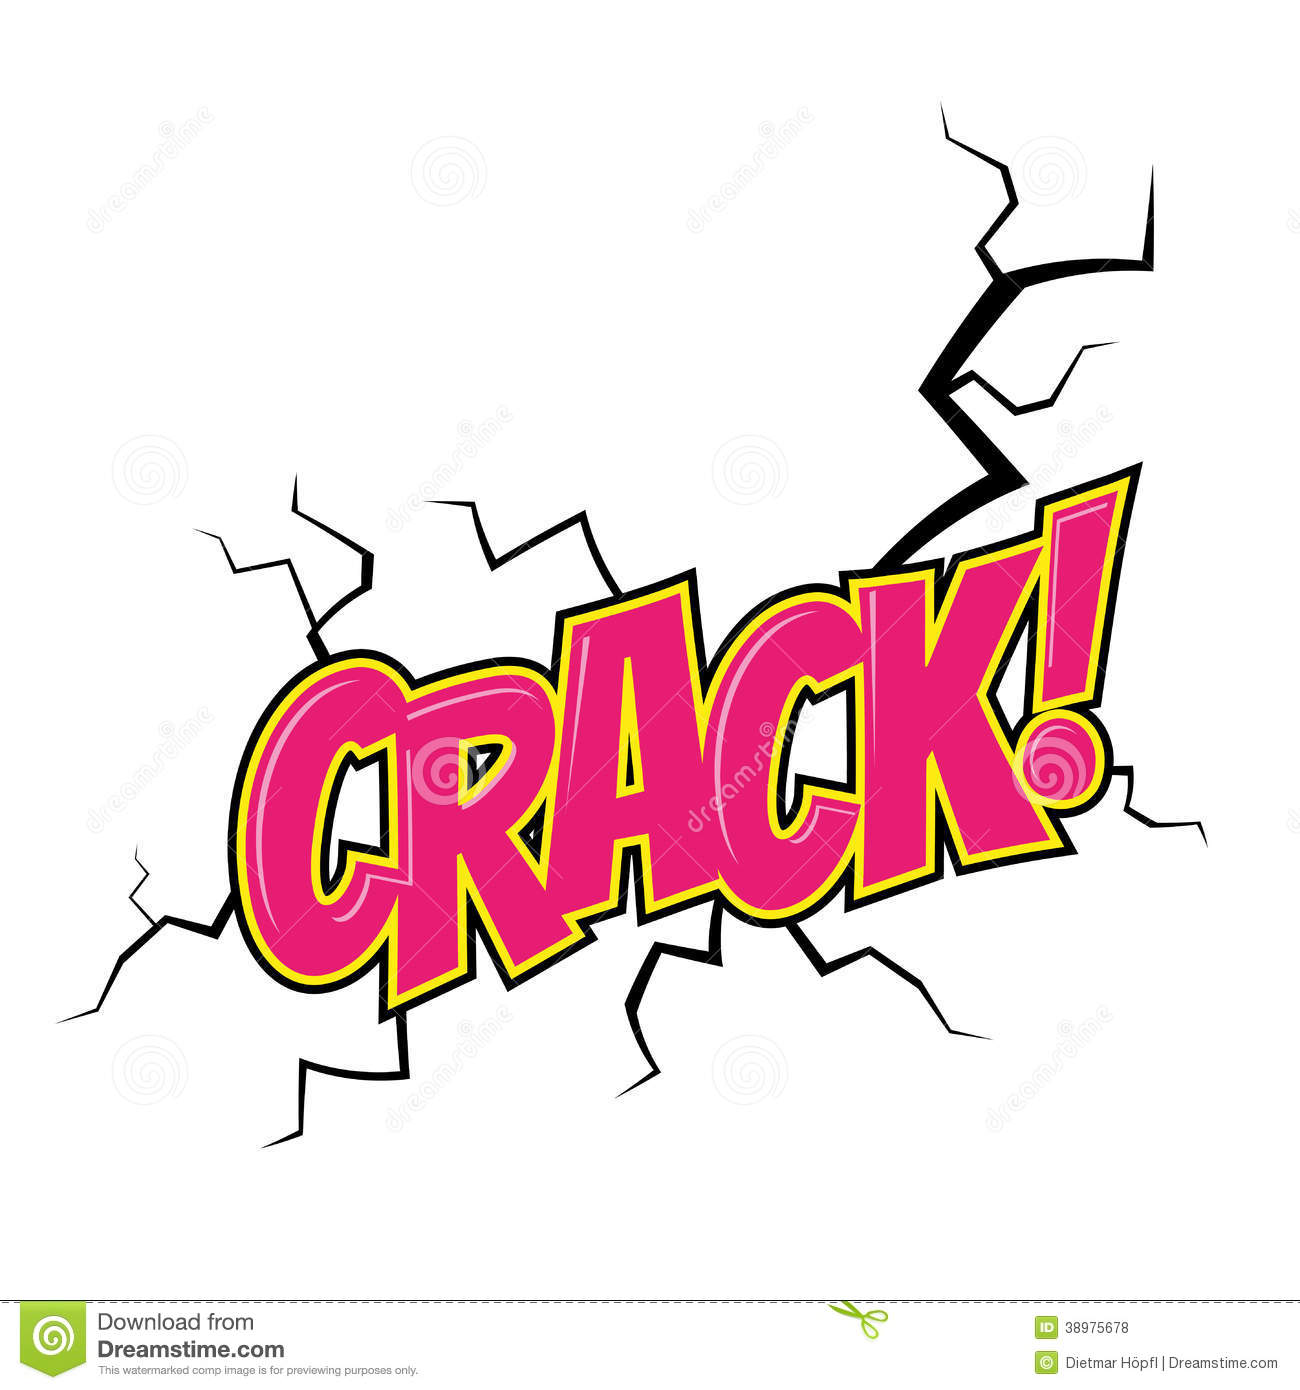 Cartoon Crack Noise Stock Vector - Image: 38975678